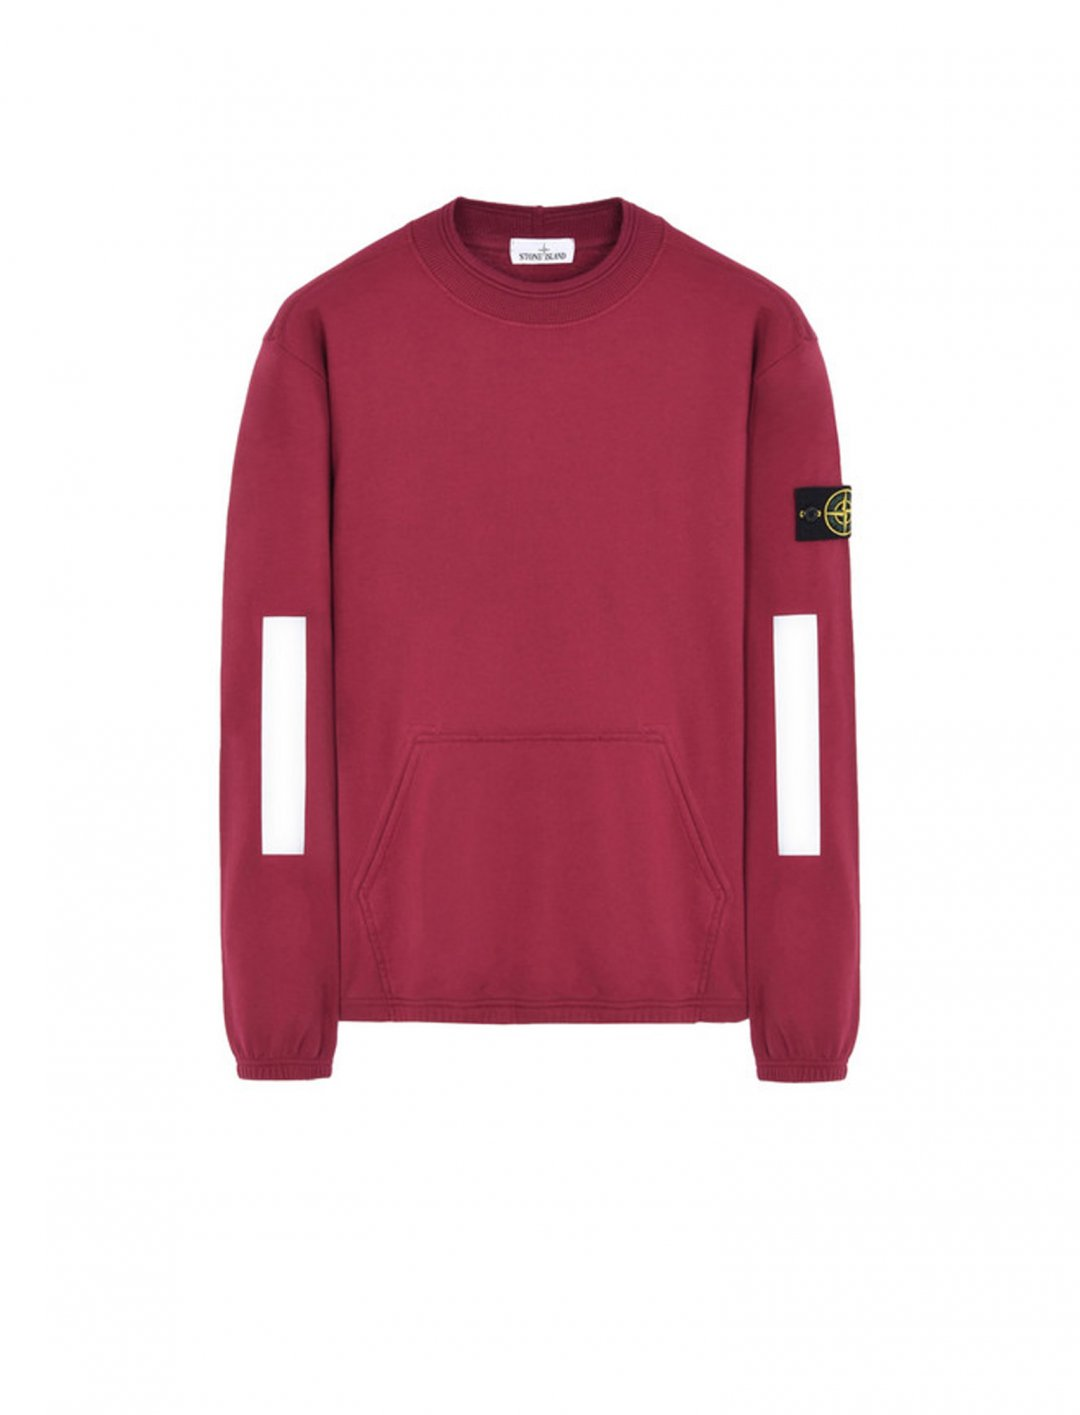 "Lotto Boyzz' Sweatshirt {""id"":5,""product_section_id"":1,""name"":""Clothing"",""order"":5} Stone Island"